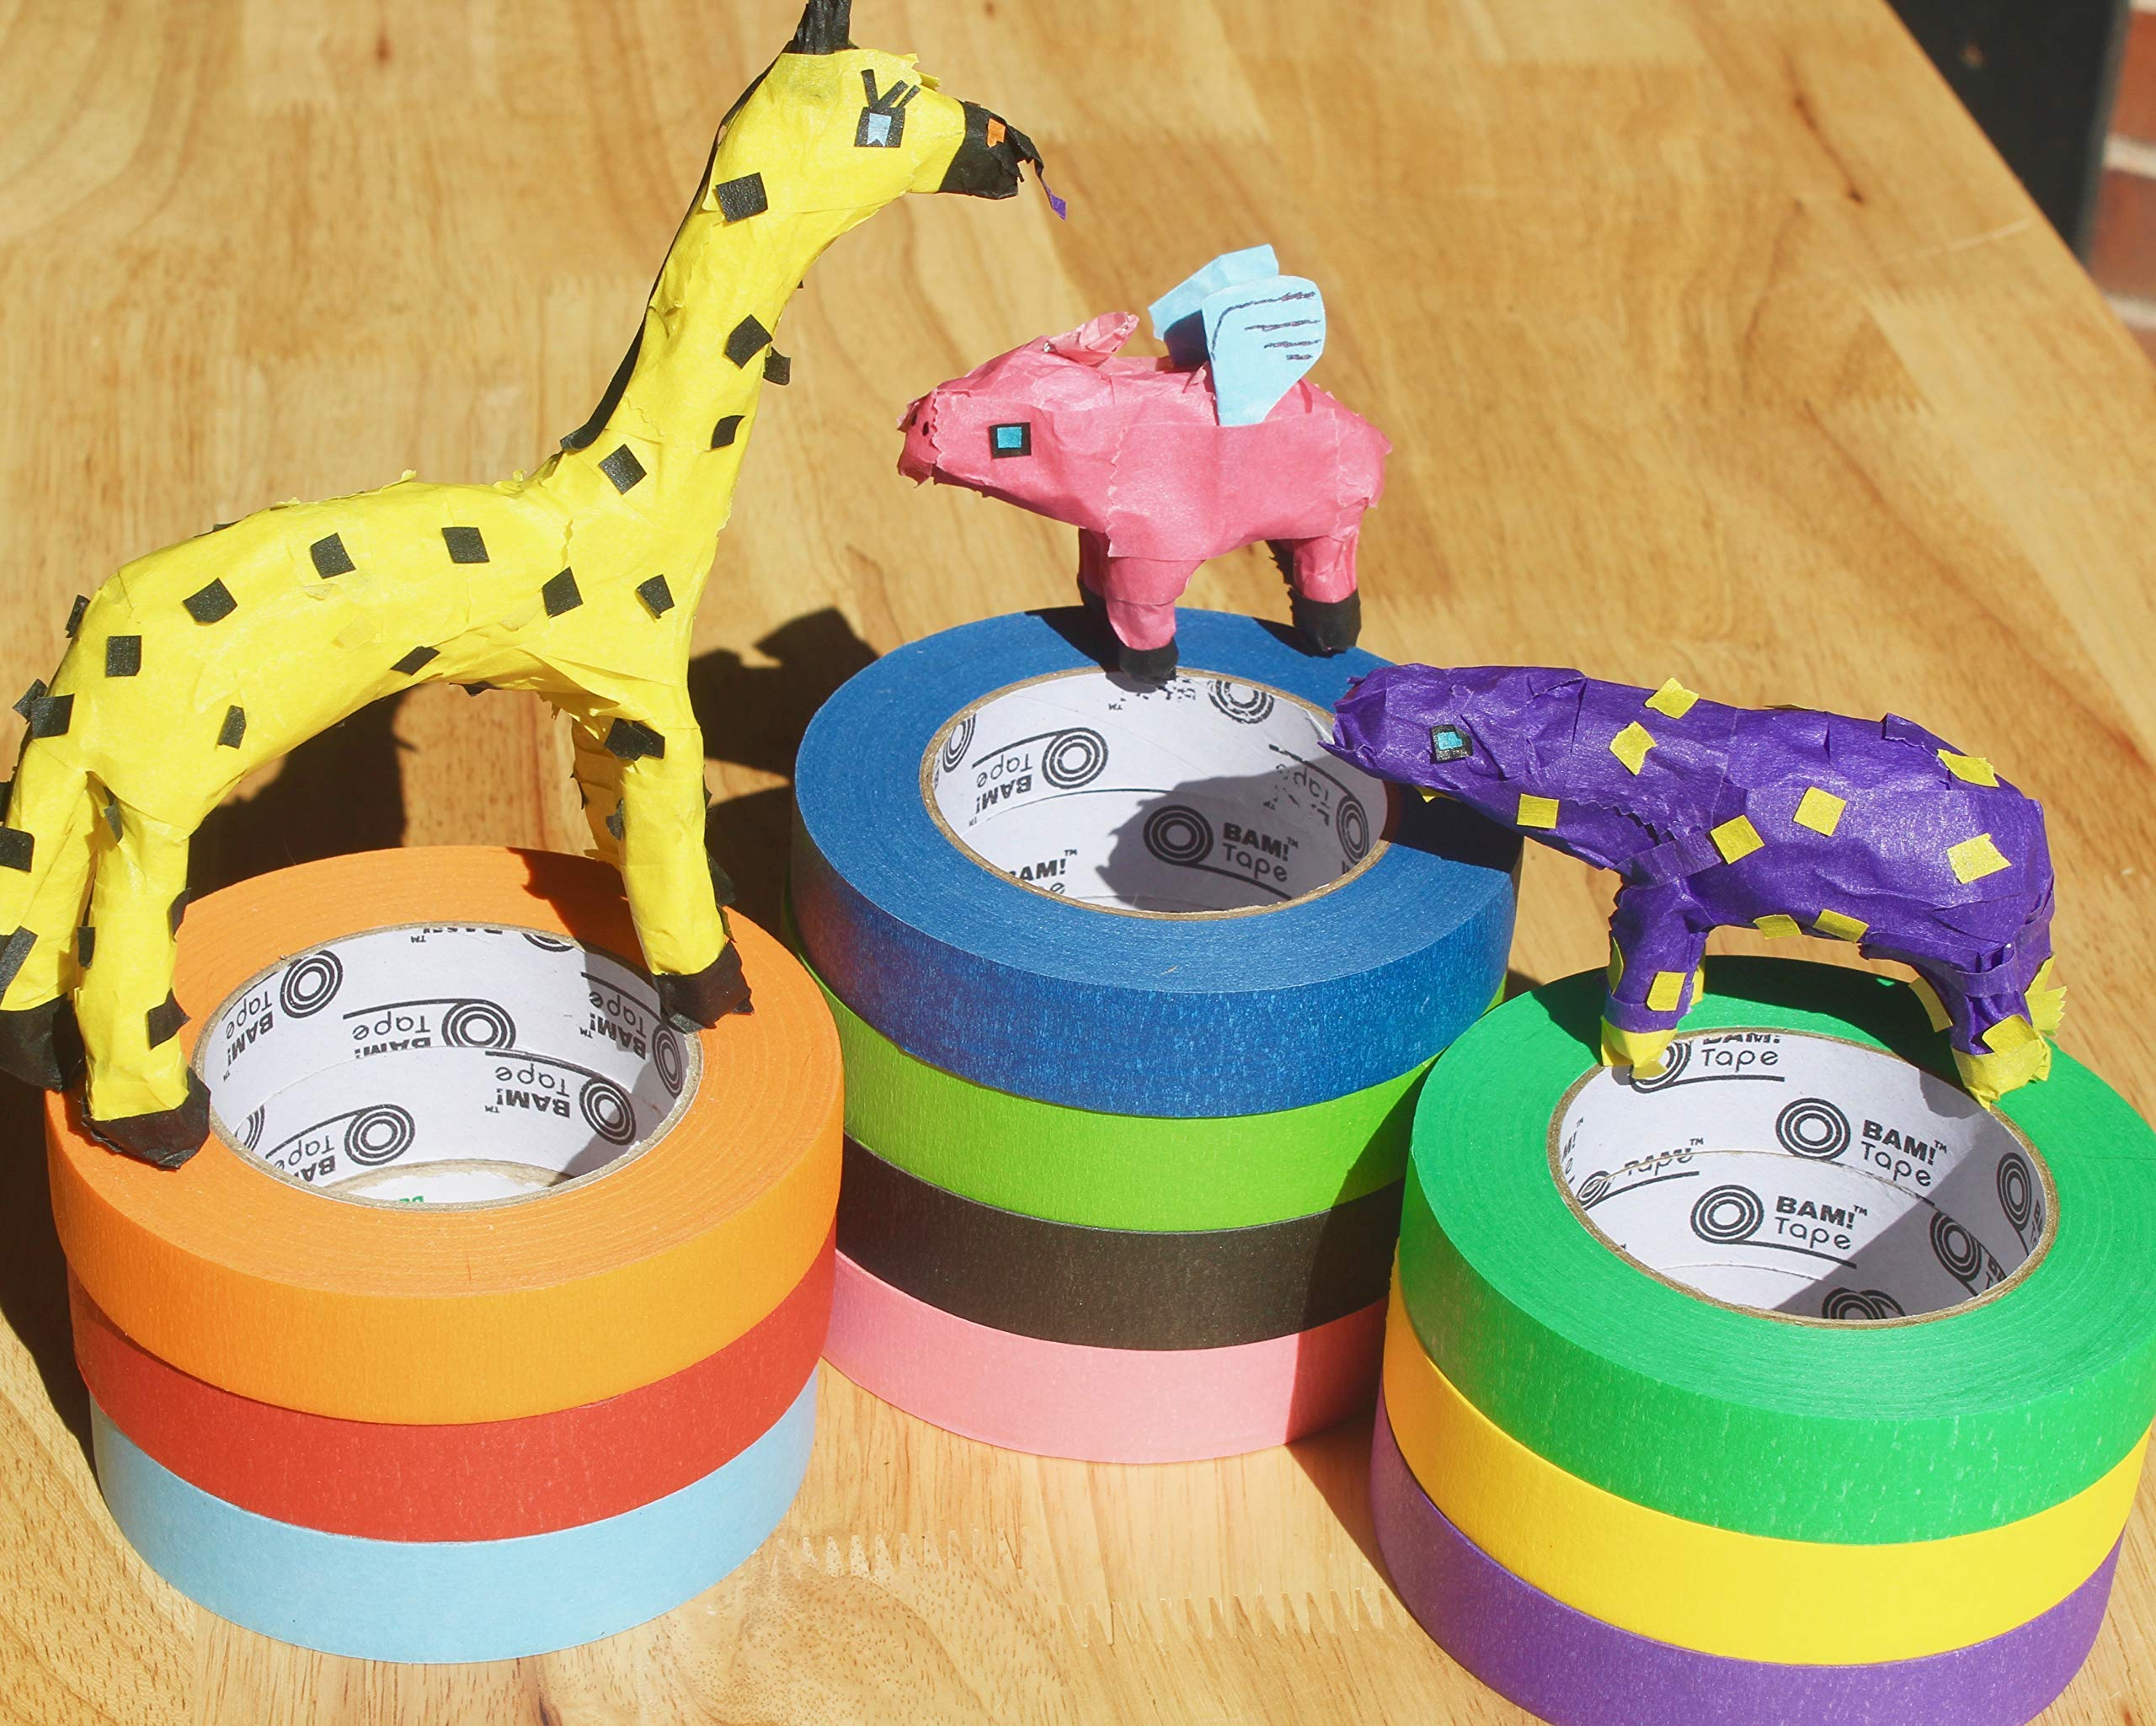 BAM! Tape Dispenser and Colored Masking Tape 1 inch x 60 Yards x 10 Rolls | Craft Tape Dispenser with Tape Cutting Edge | Arts and Crafts Teacher Supplies | School Supplies Craft Kit Art Supplies by BAM! Tape (Image #6)